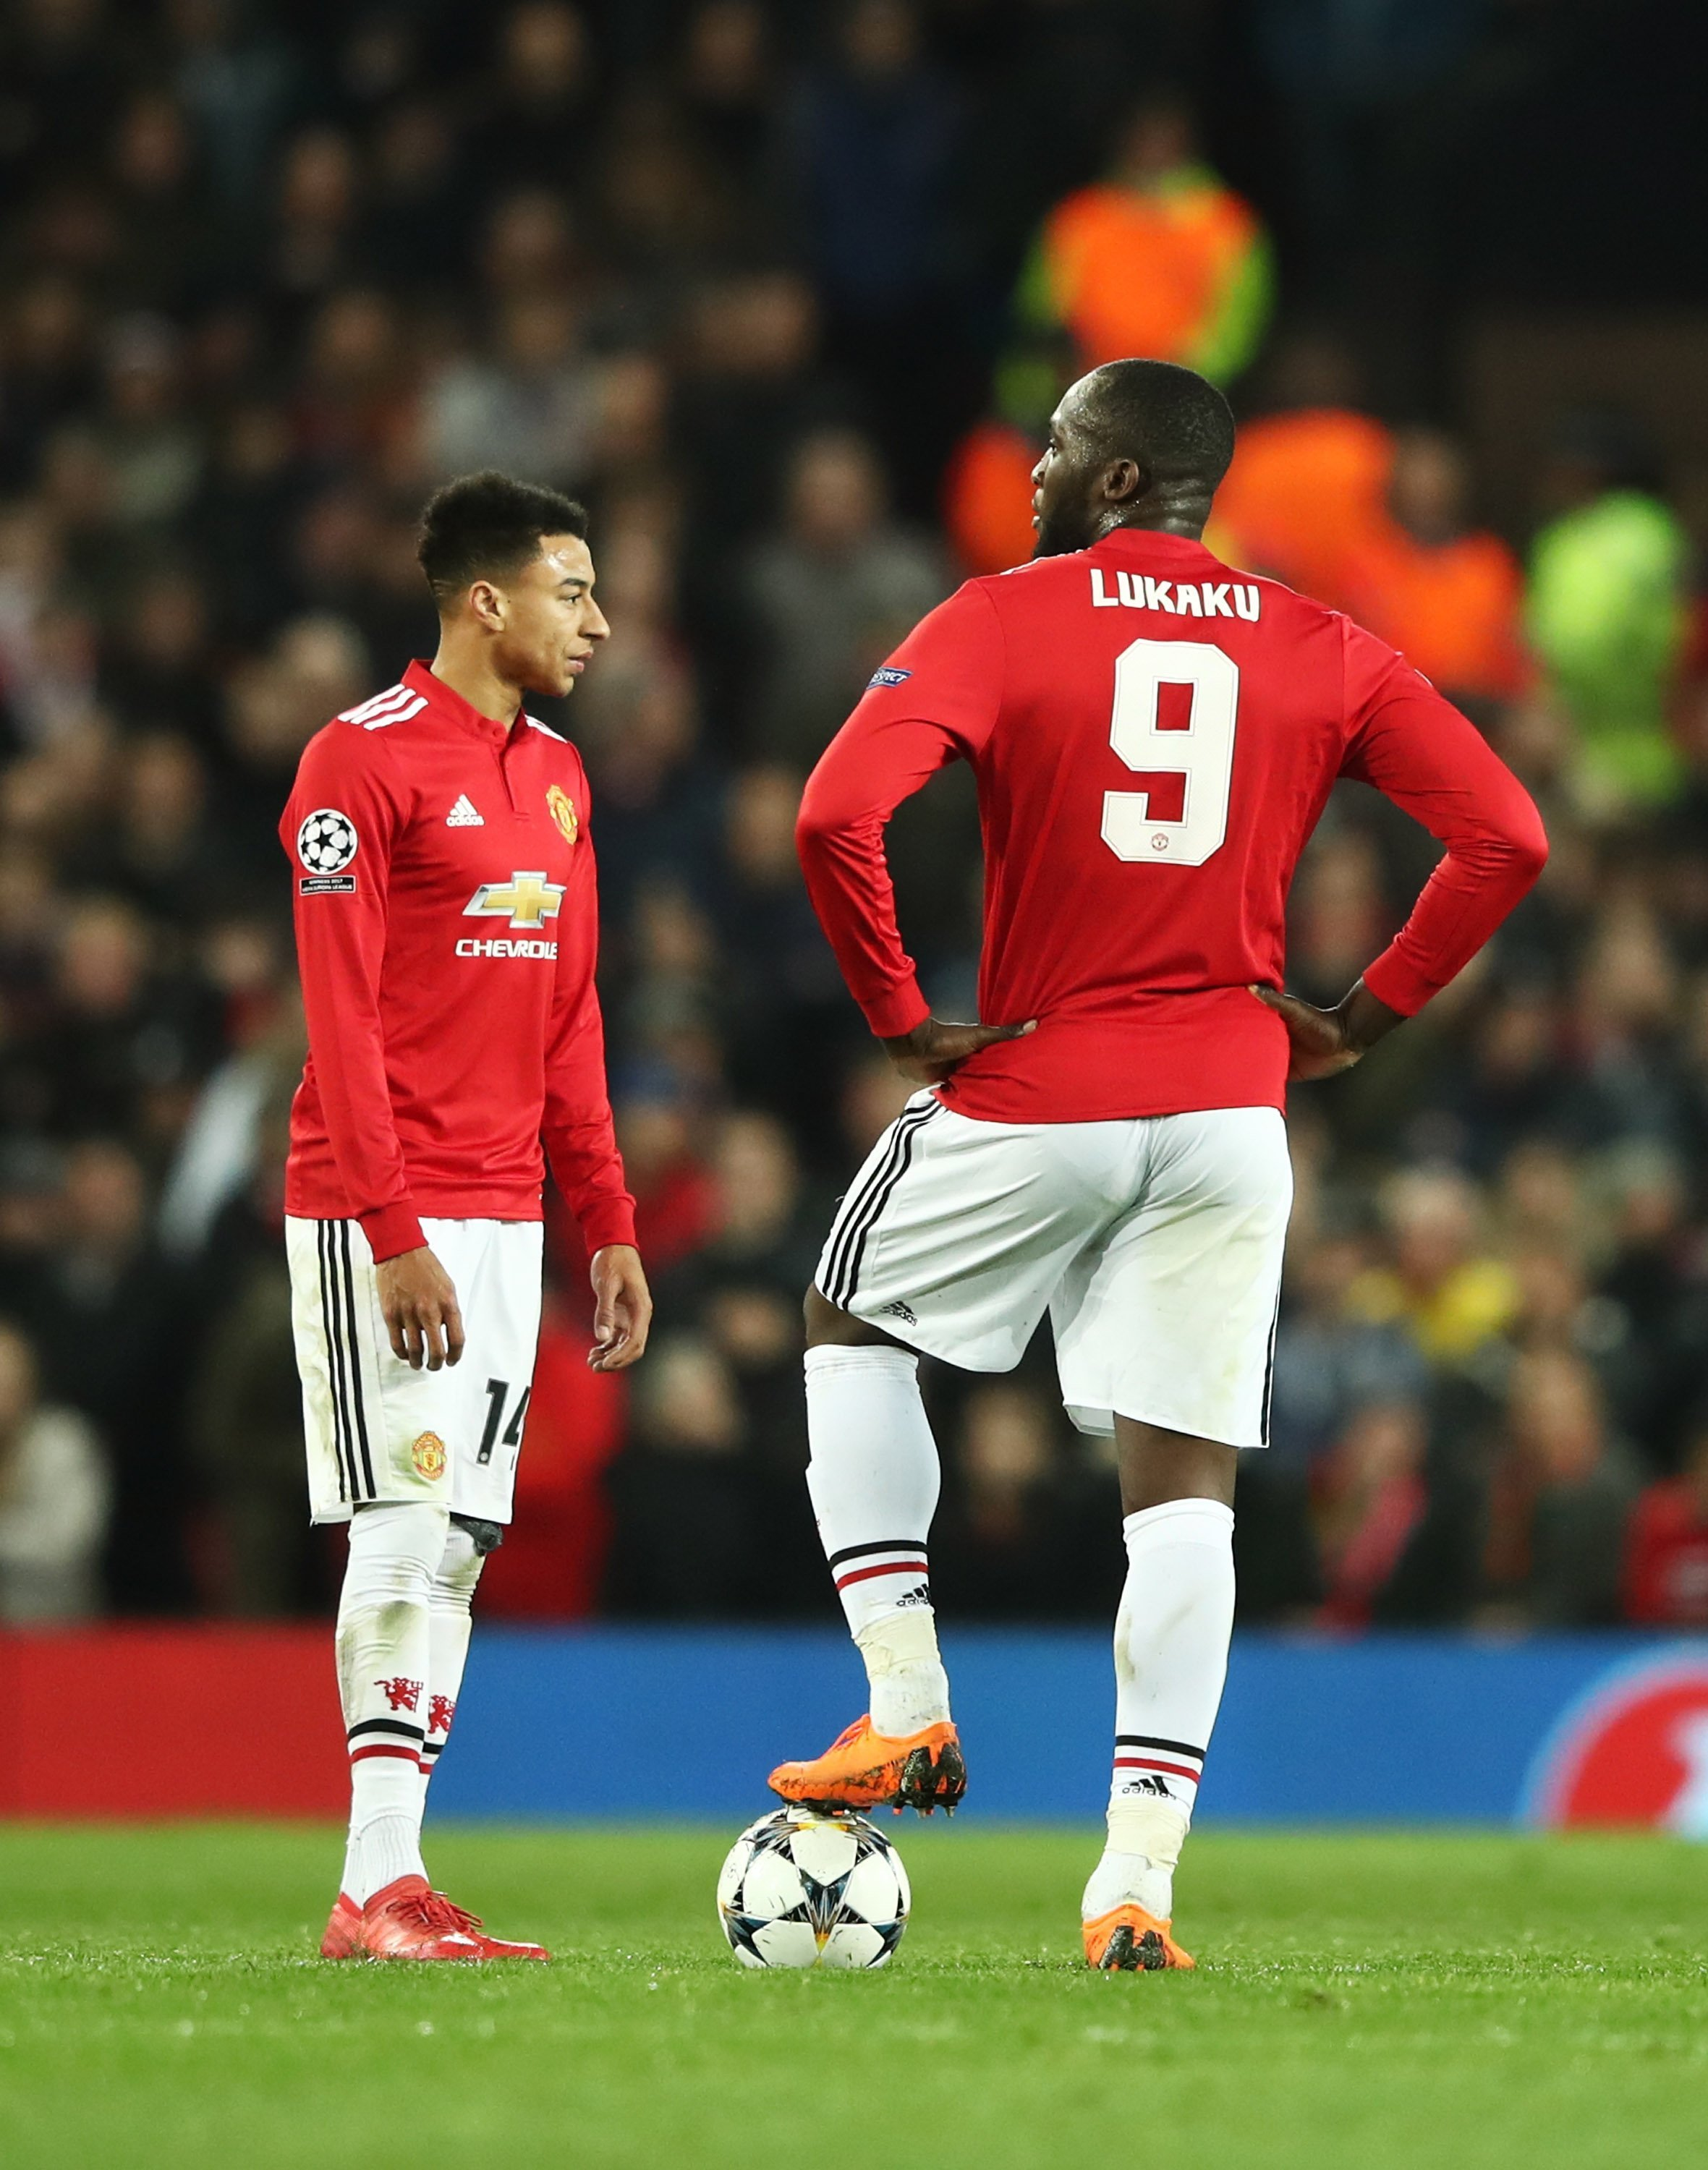 Even though United are England's most successful team -- in major trophies won -- and own a trio of Champions League titles, manager Jose Mourinho baffled reporters by attempting to play down the defeat while talking up his own past achievements.